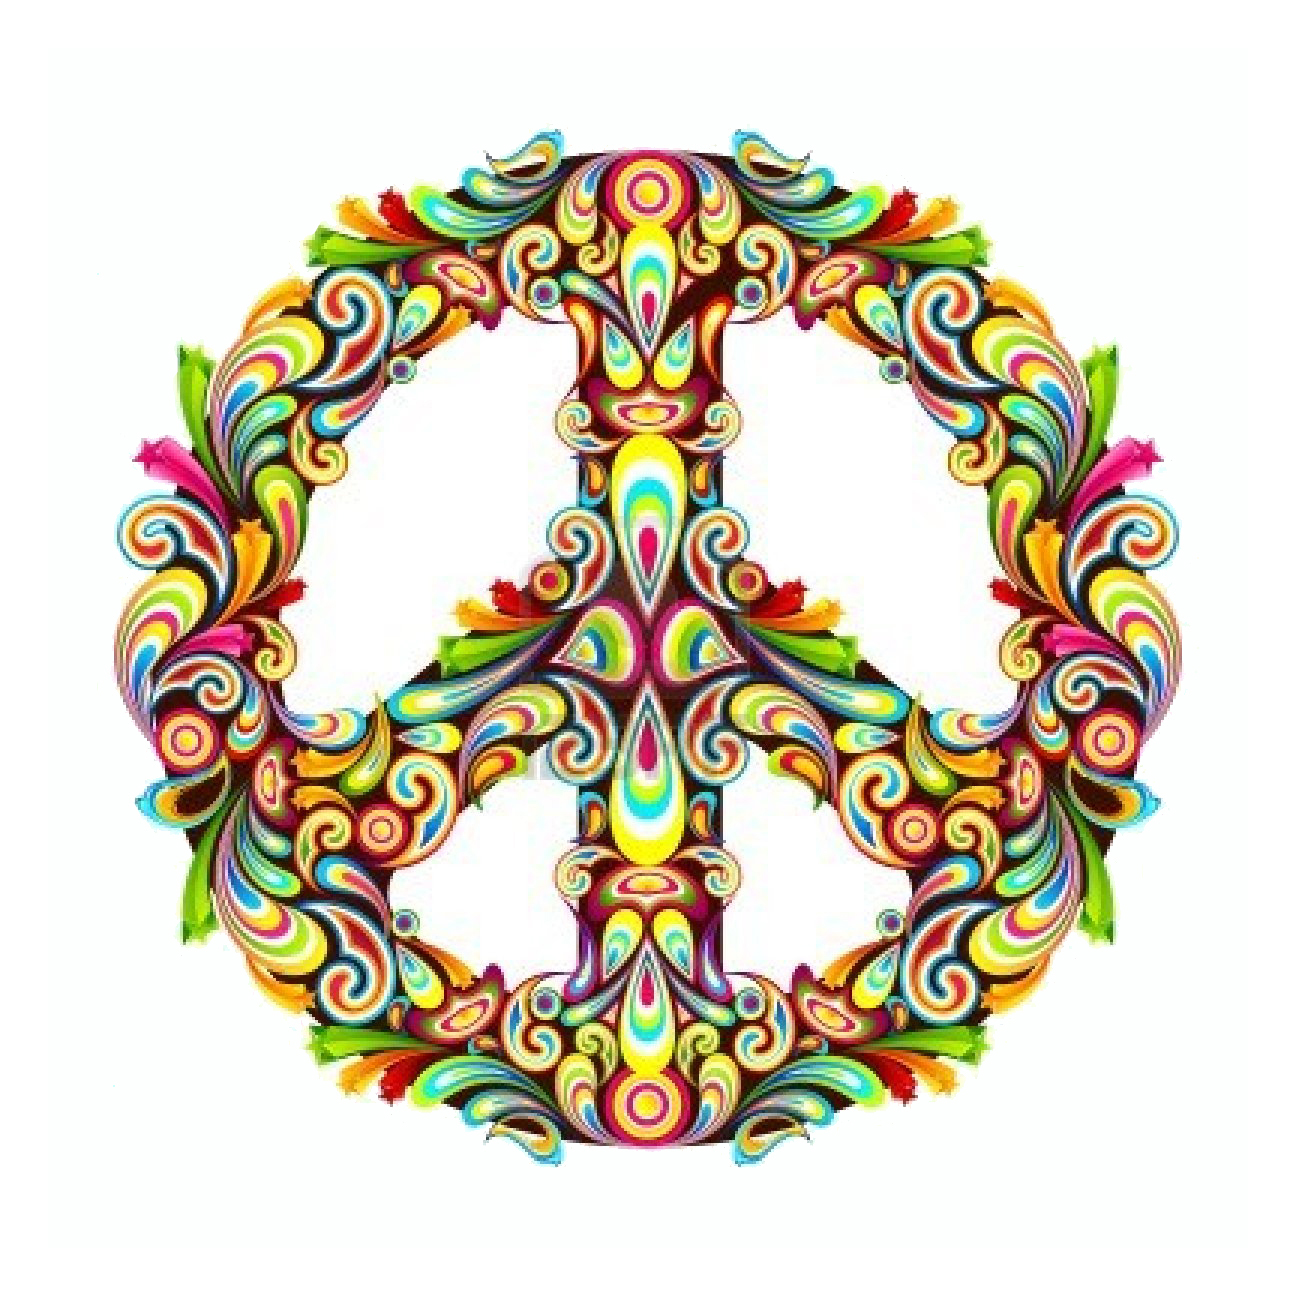 Drawn peace sign freedom Old sign World 50 years